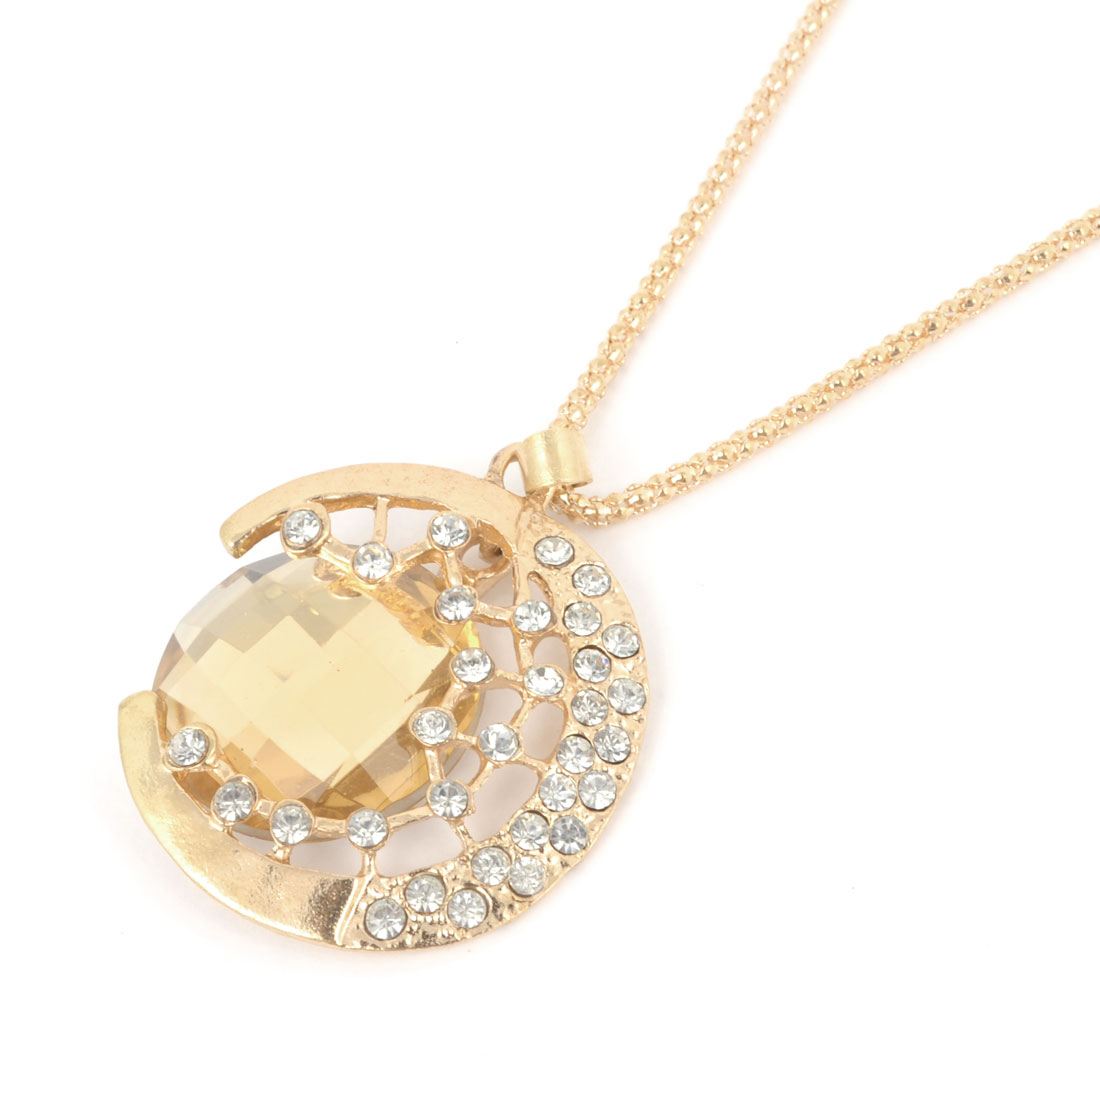 Rhinestones Inlaid Faux Crystal Moon Pendant Gold Tone Necklace for Woman